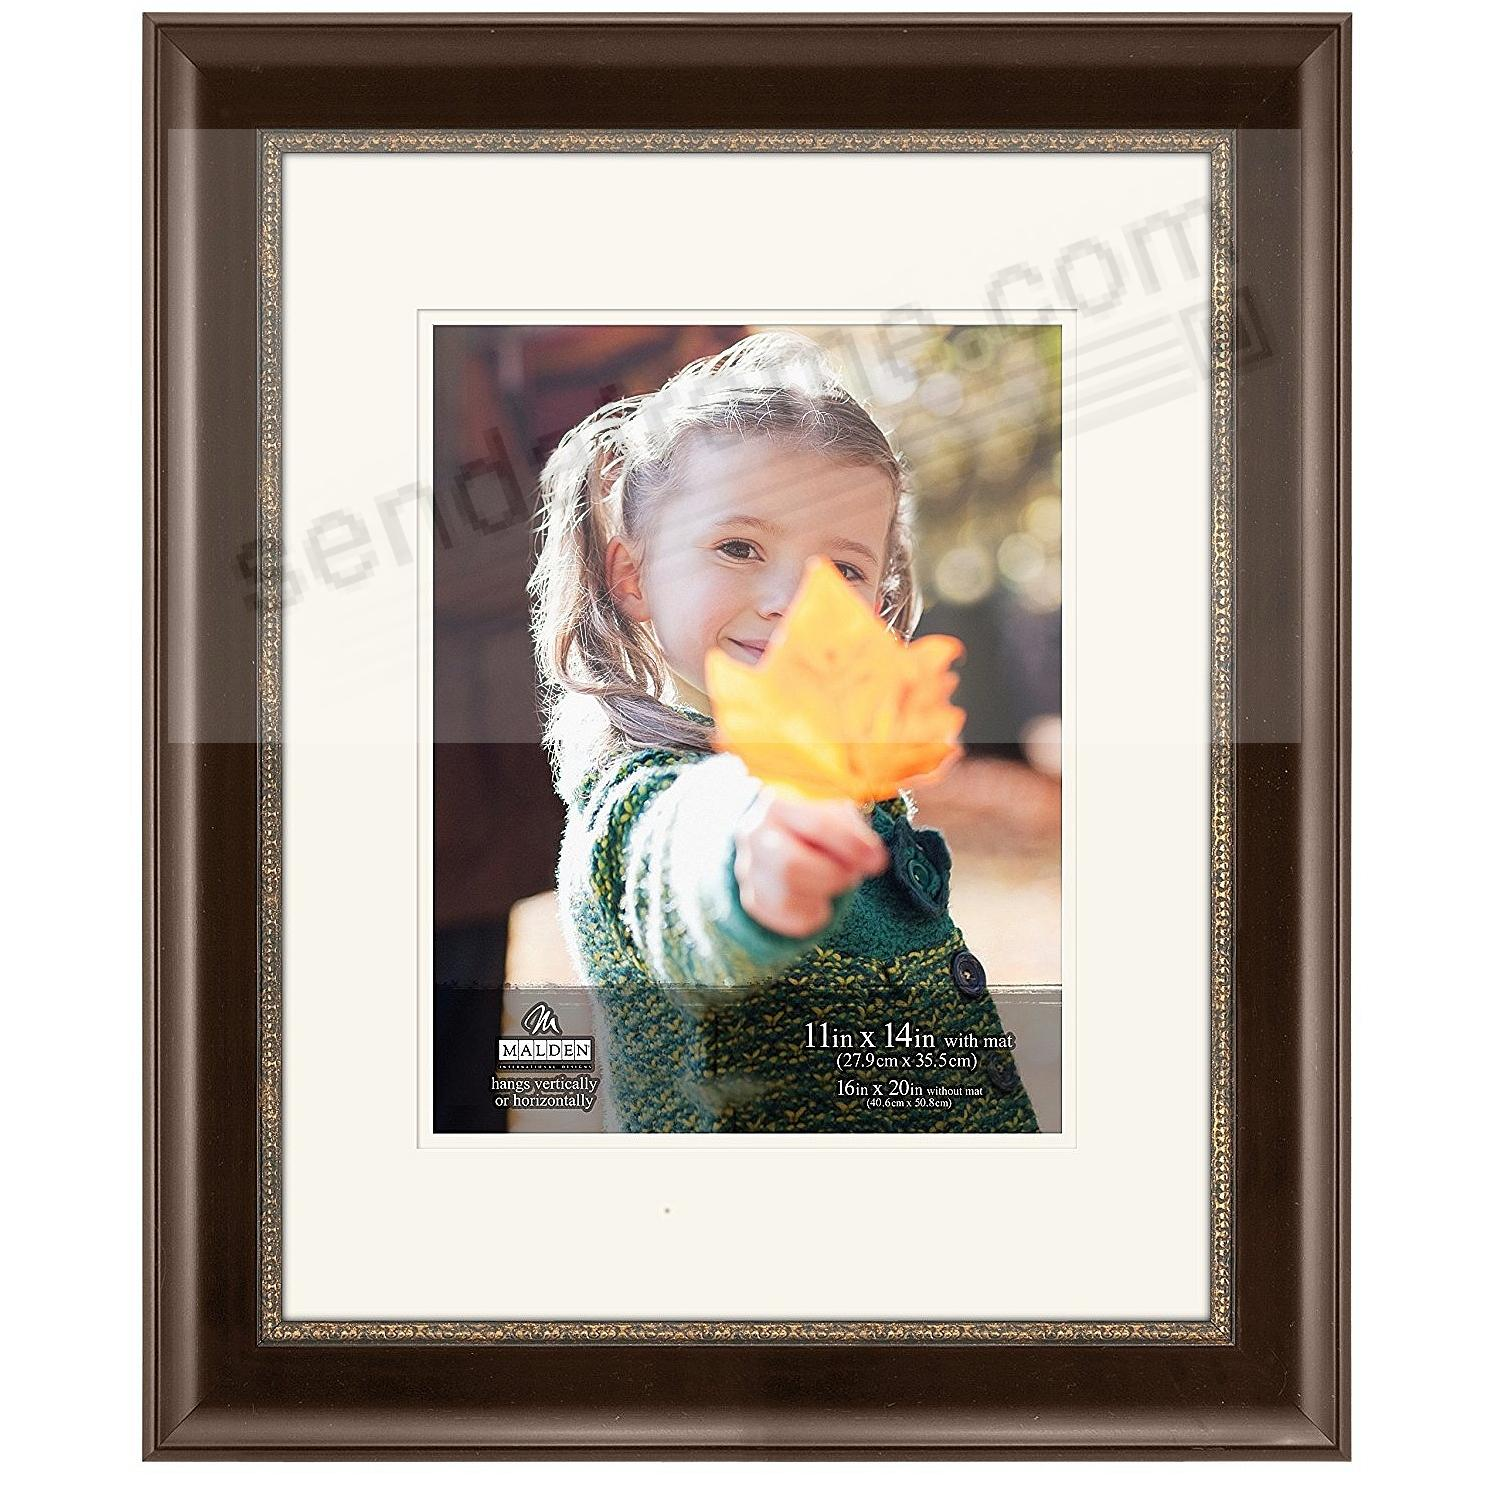 Old Fashioned Frame Matted To 11x14 Sketch - Picture Frame Ideas ...